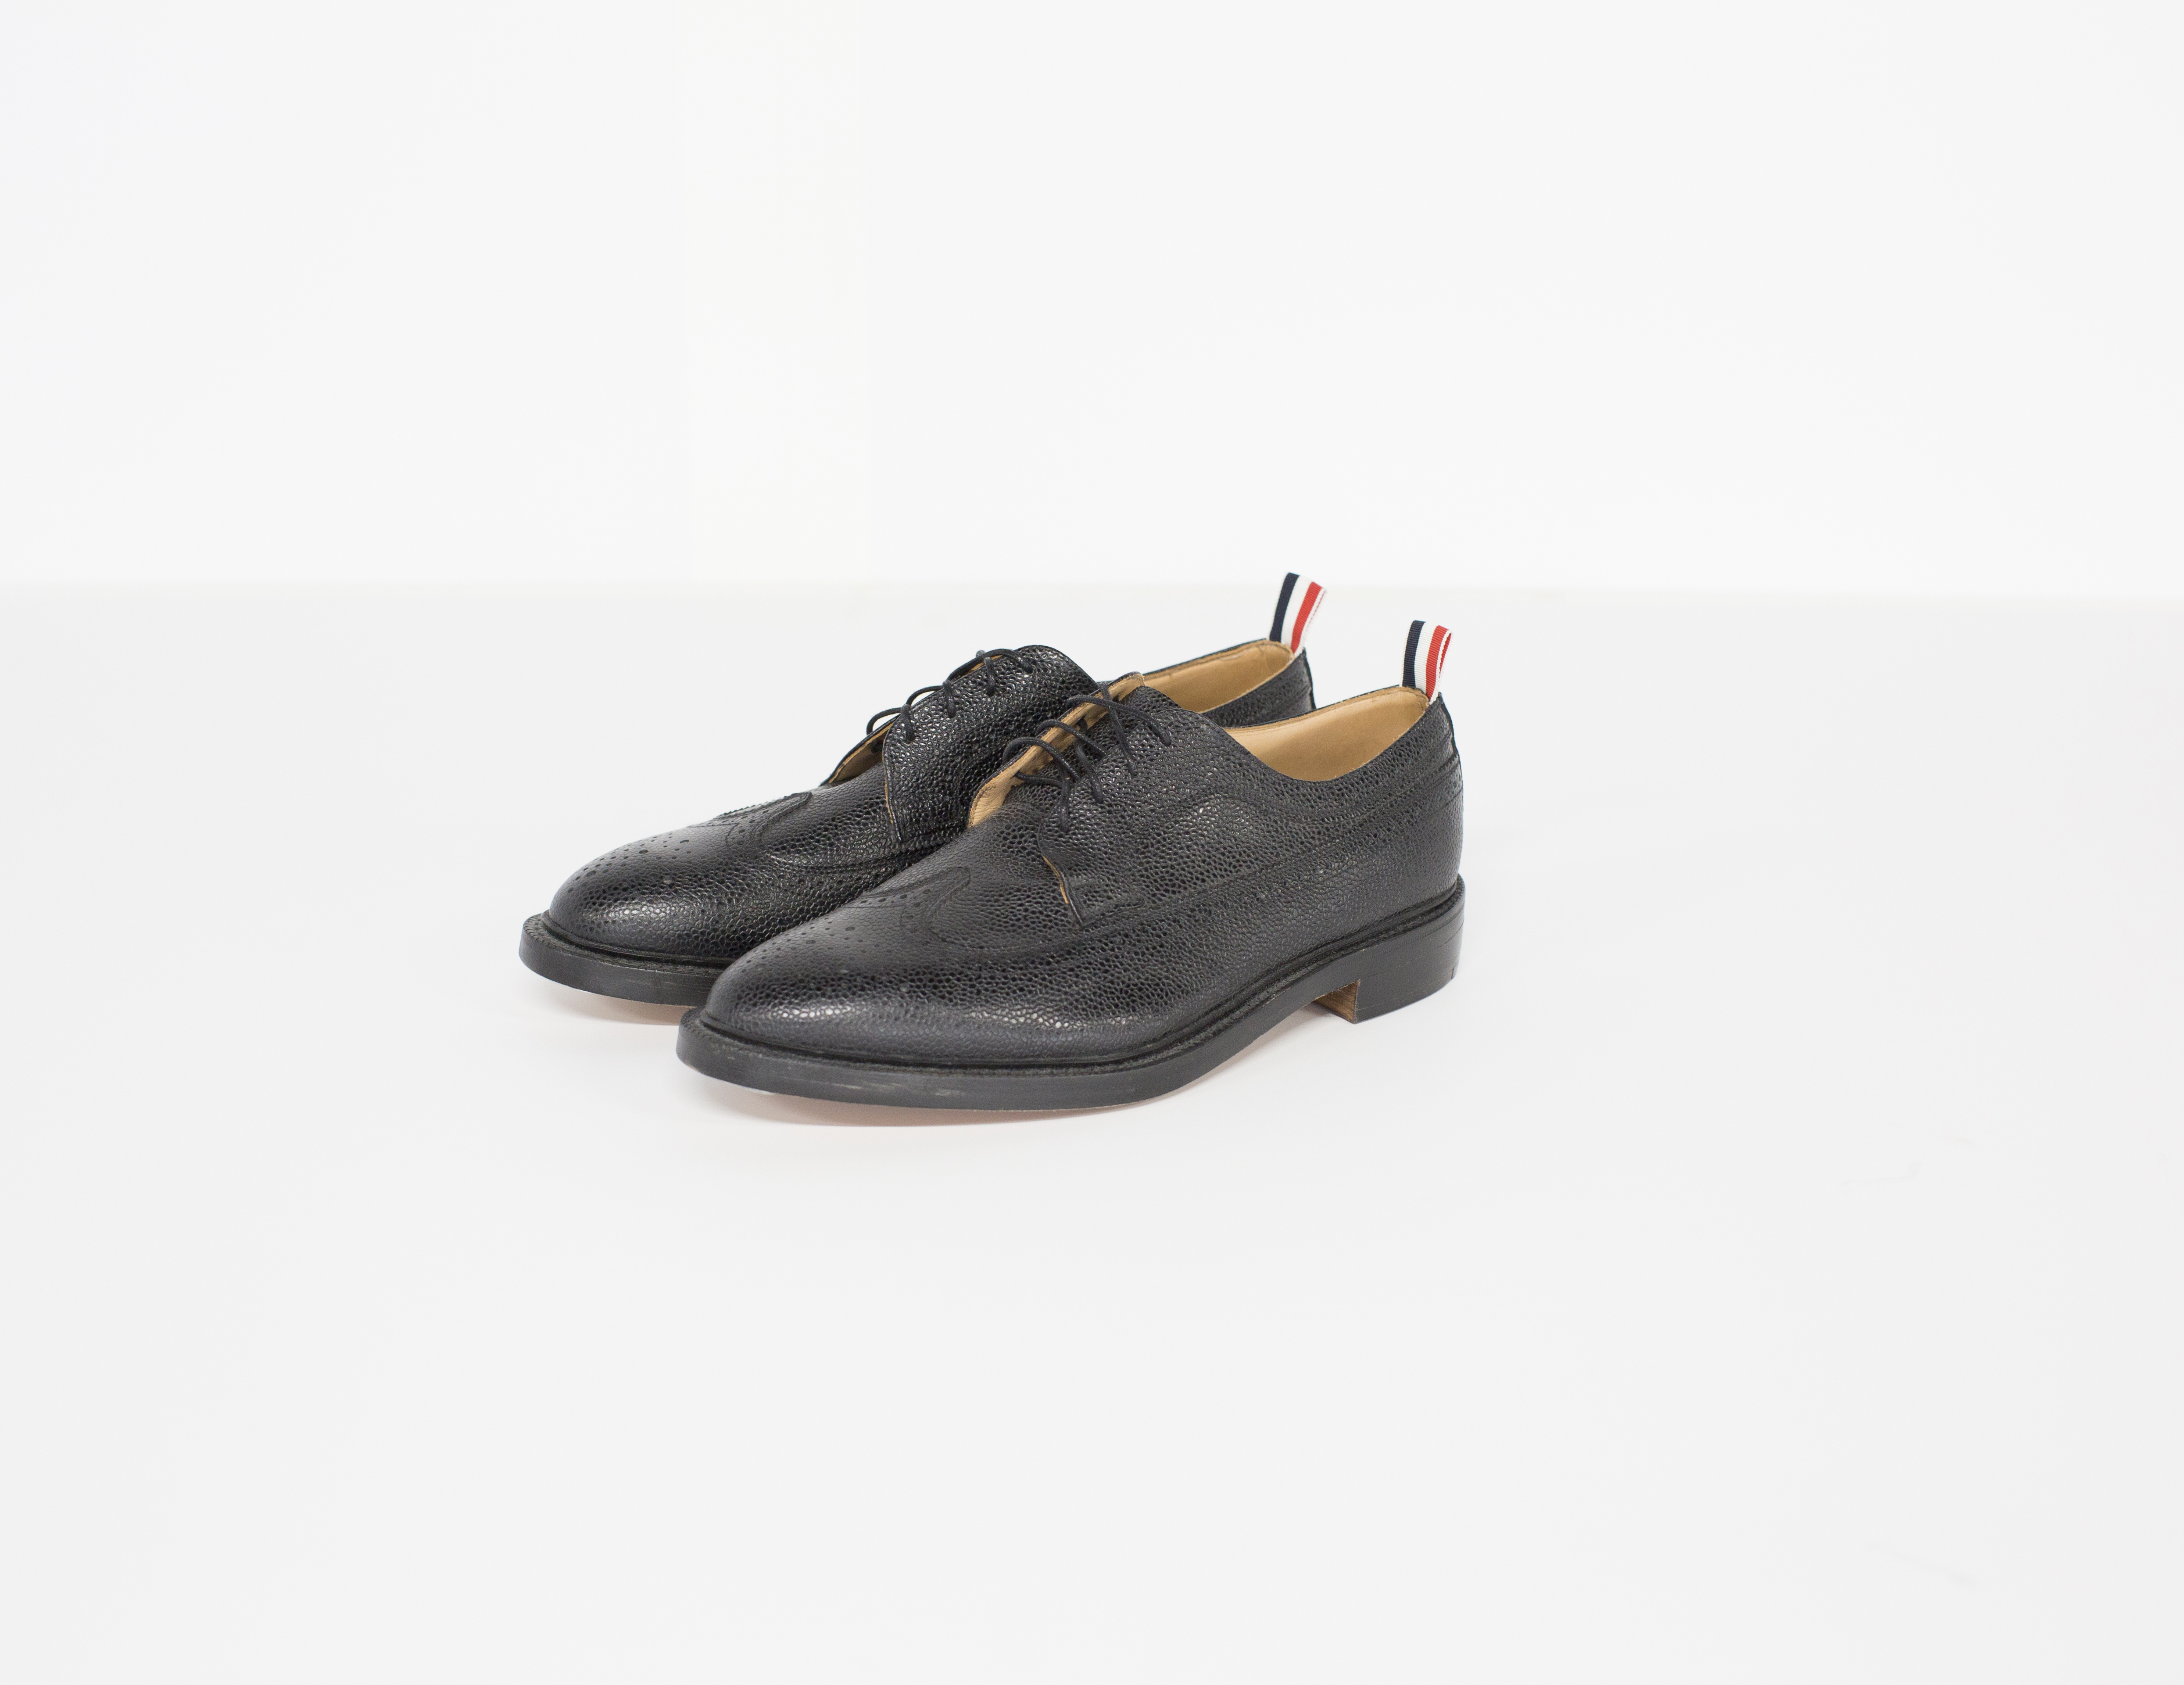 bad999c82cdada Thom Browne ×. Classic longwing brogue in black pebble grain leather.